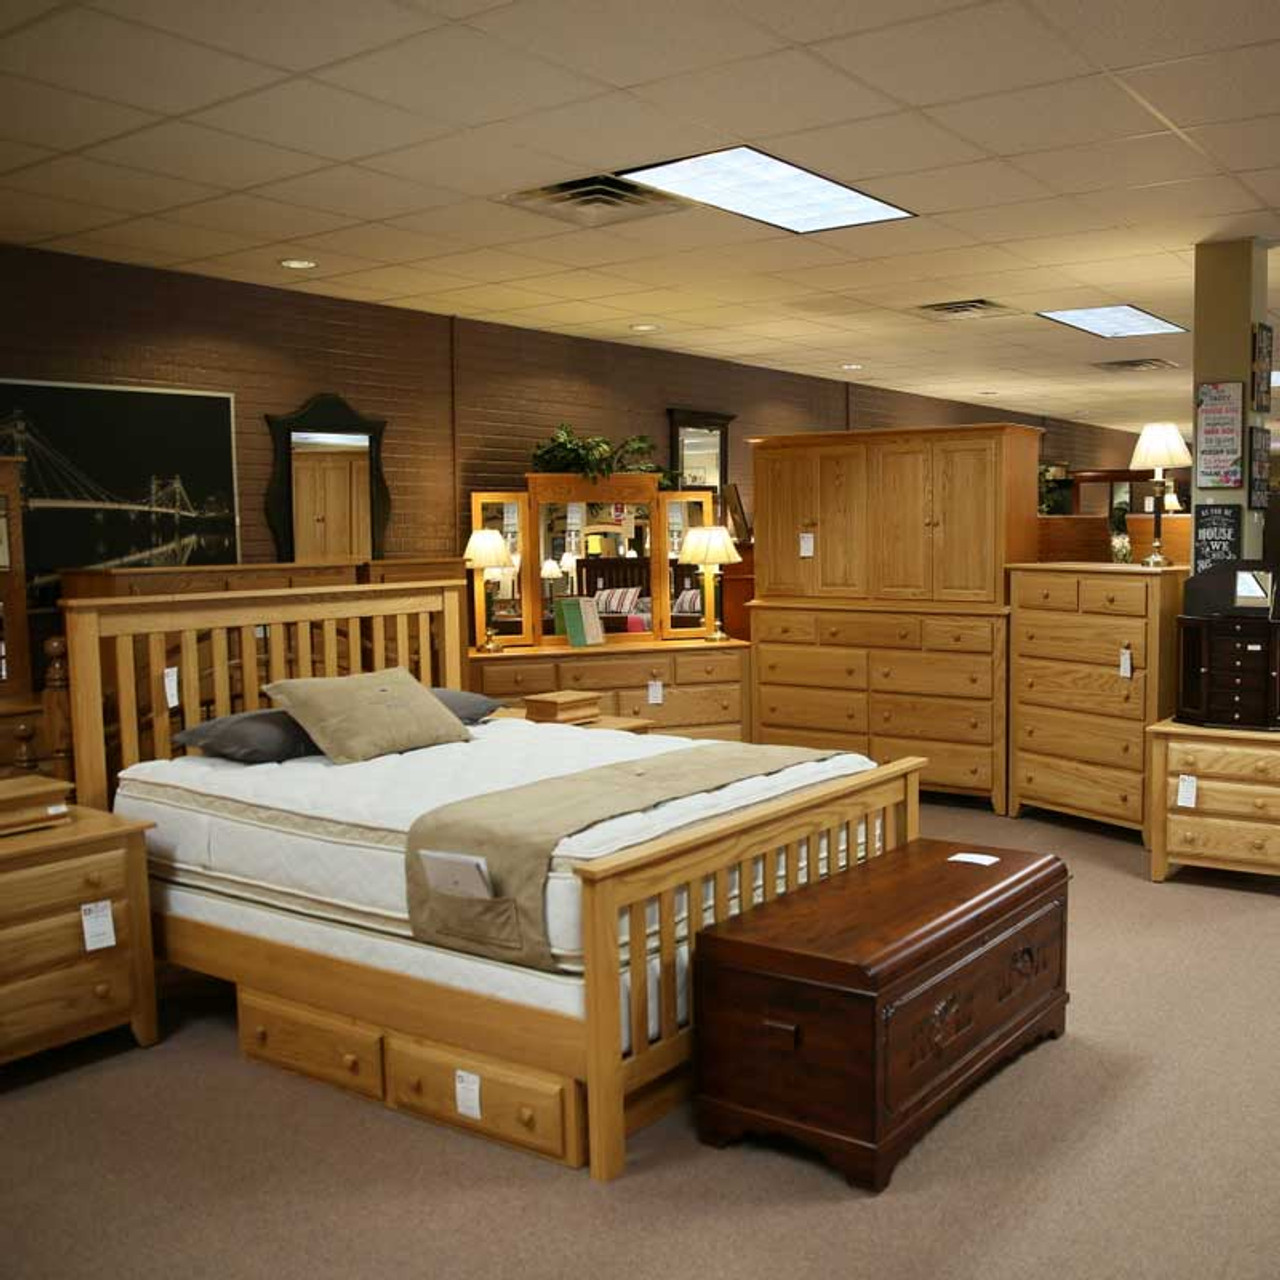 Swiss Valley Furniture In Sugarcreek Ohio